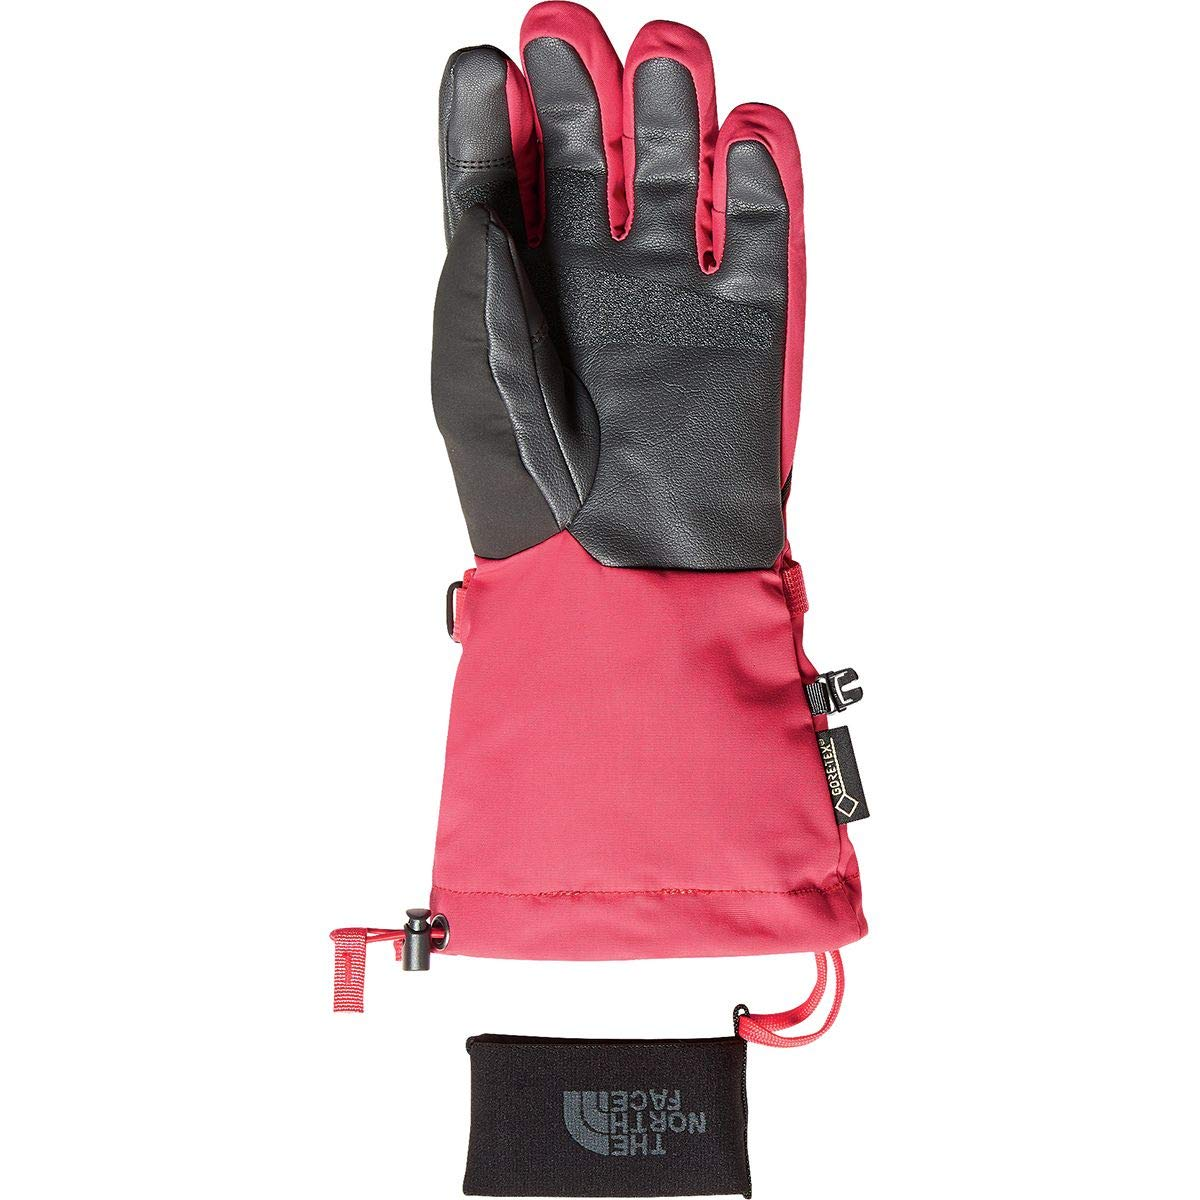 The North Face Women's Montana Gore-Tex¿ Gloves Teaberry Pink/Tnf Dark Grey Heather LG by The North Face (Image #2)